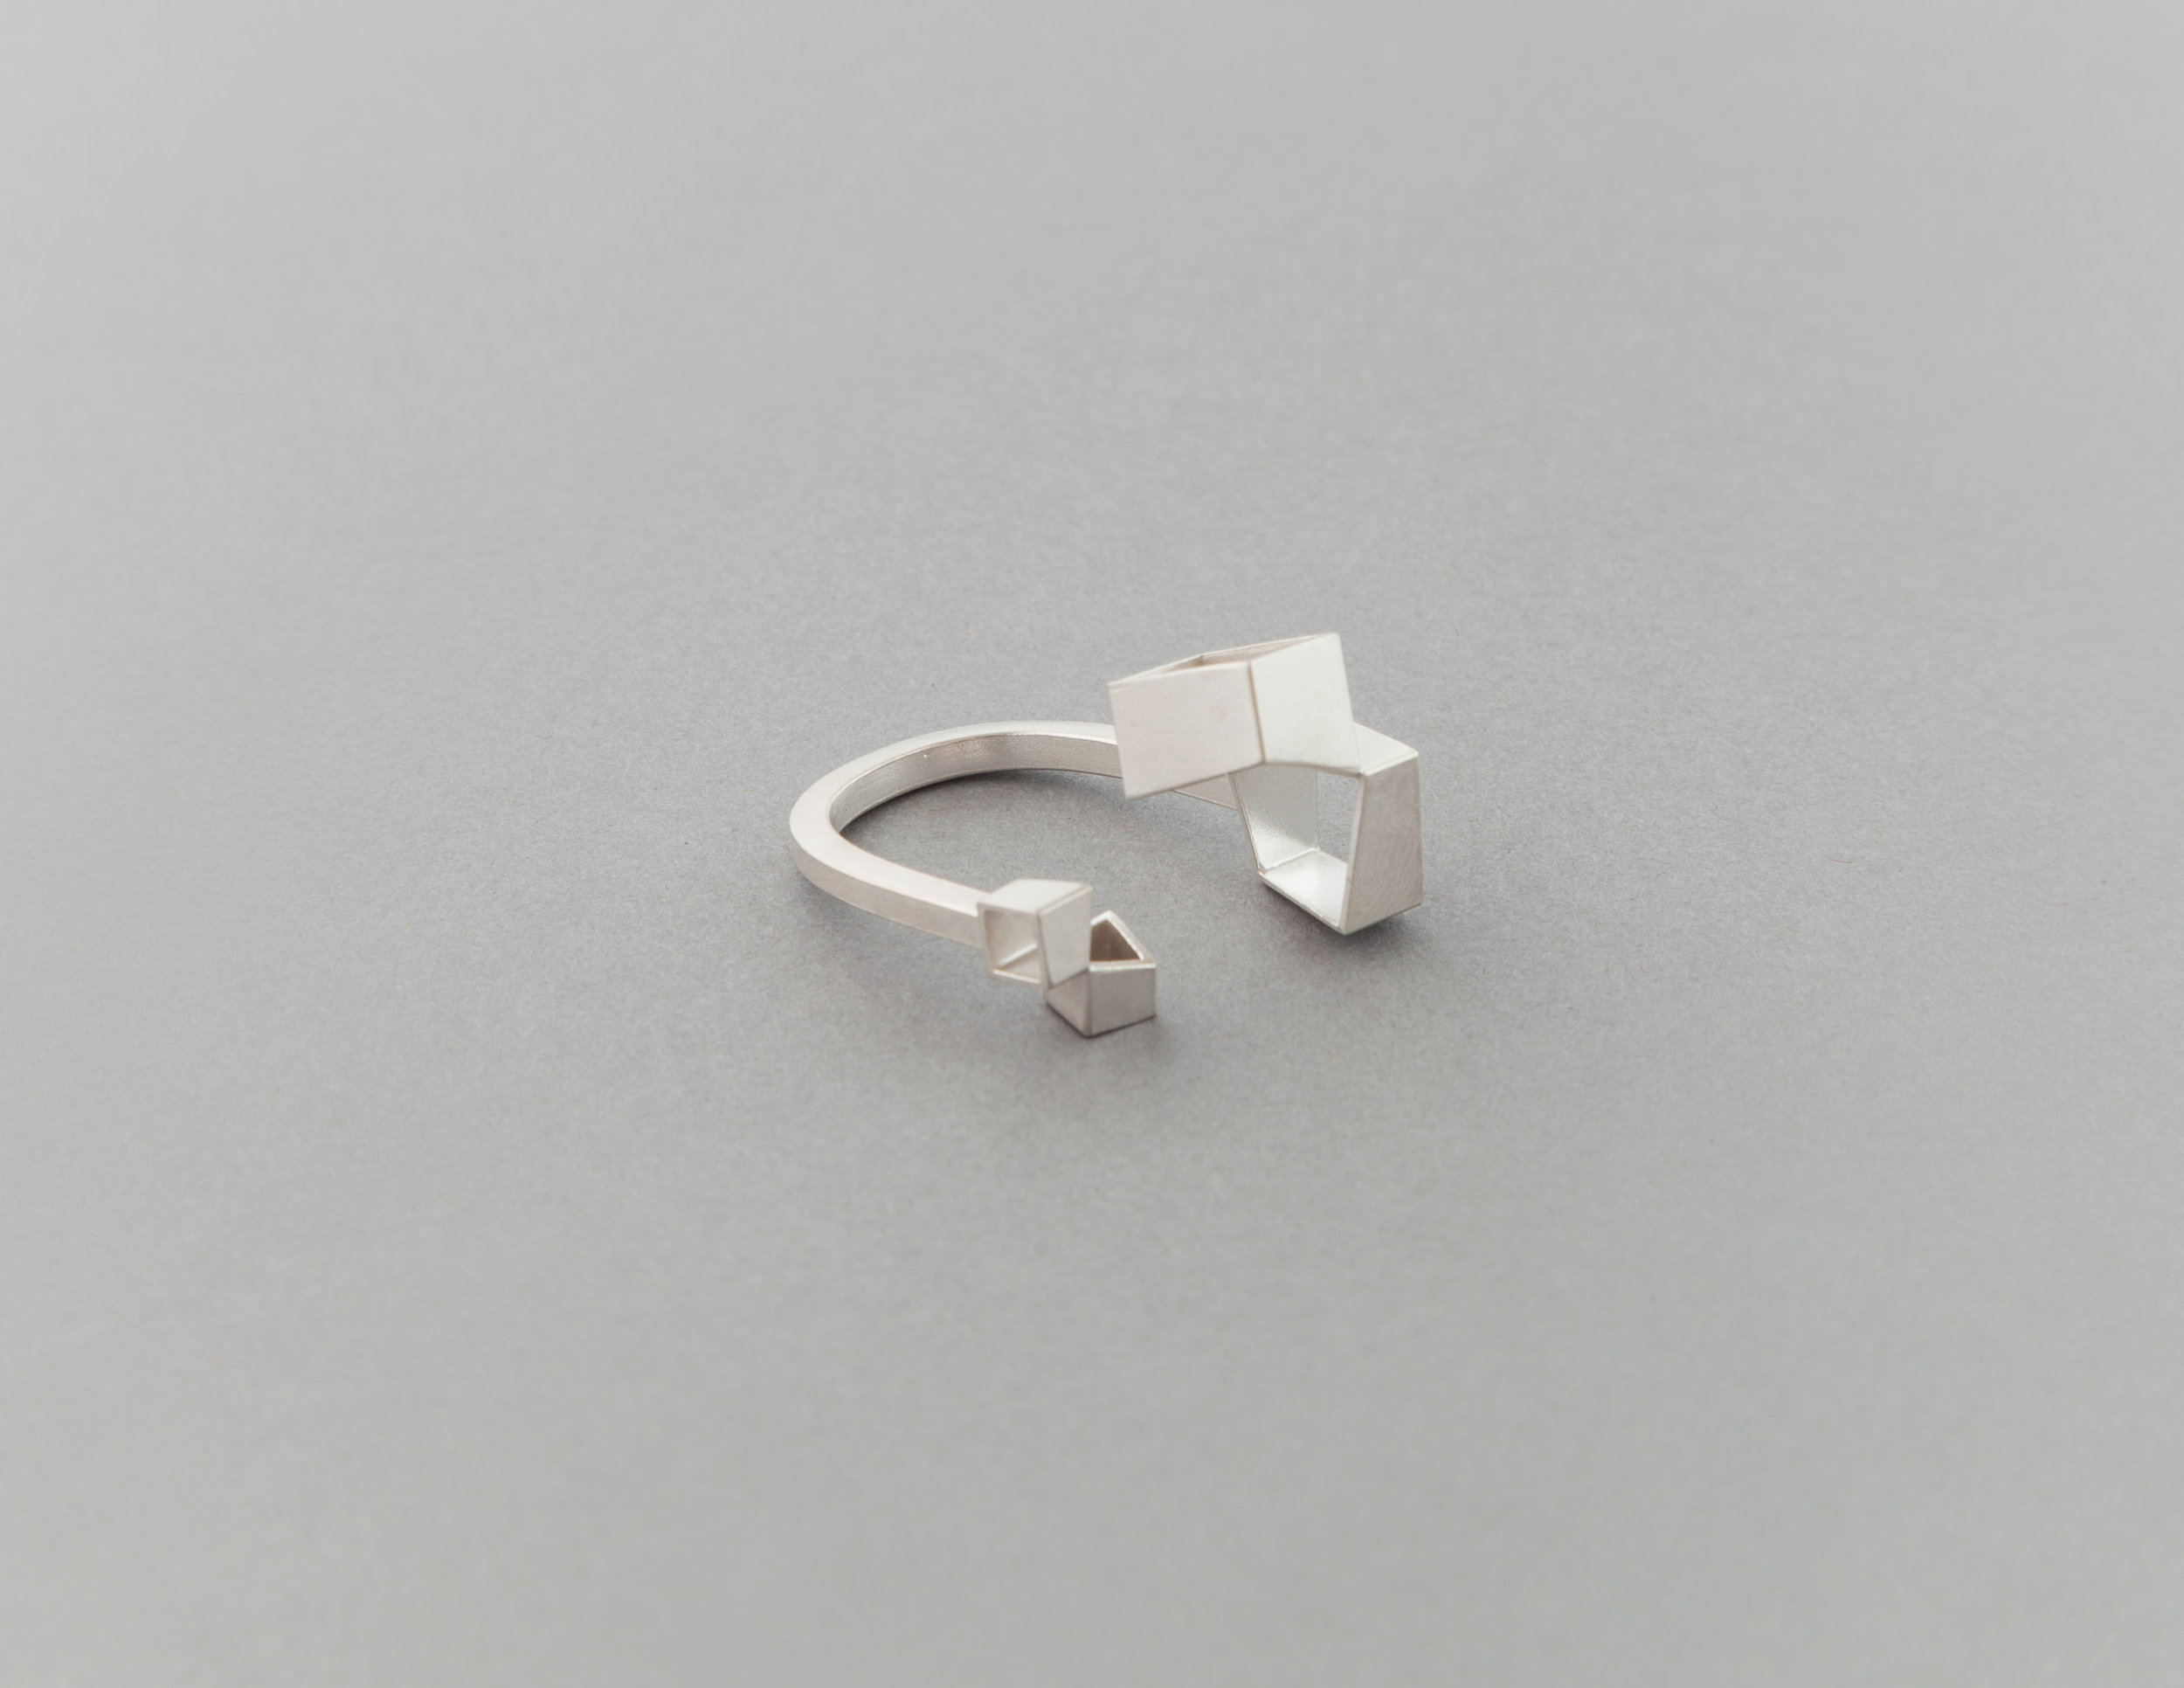 Alma Sophia Design 8x8 & 4x4 adjustable ring.jpg